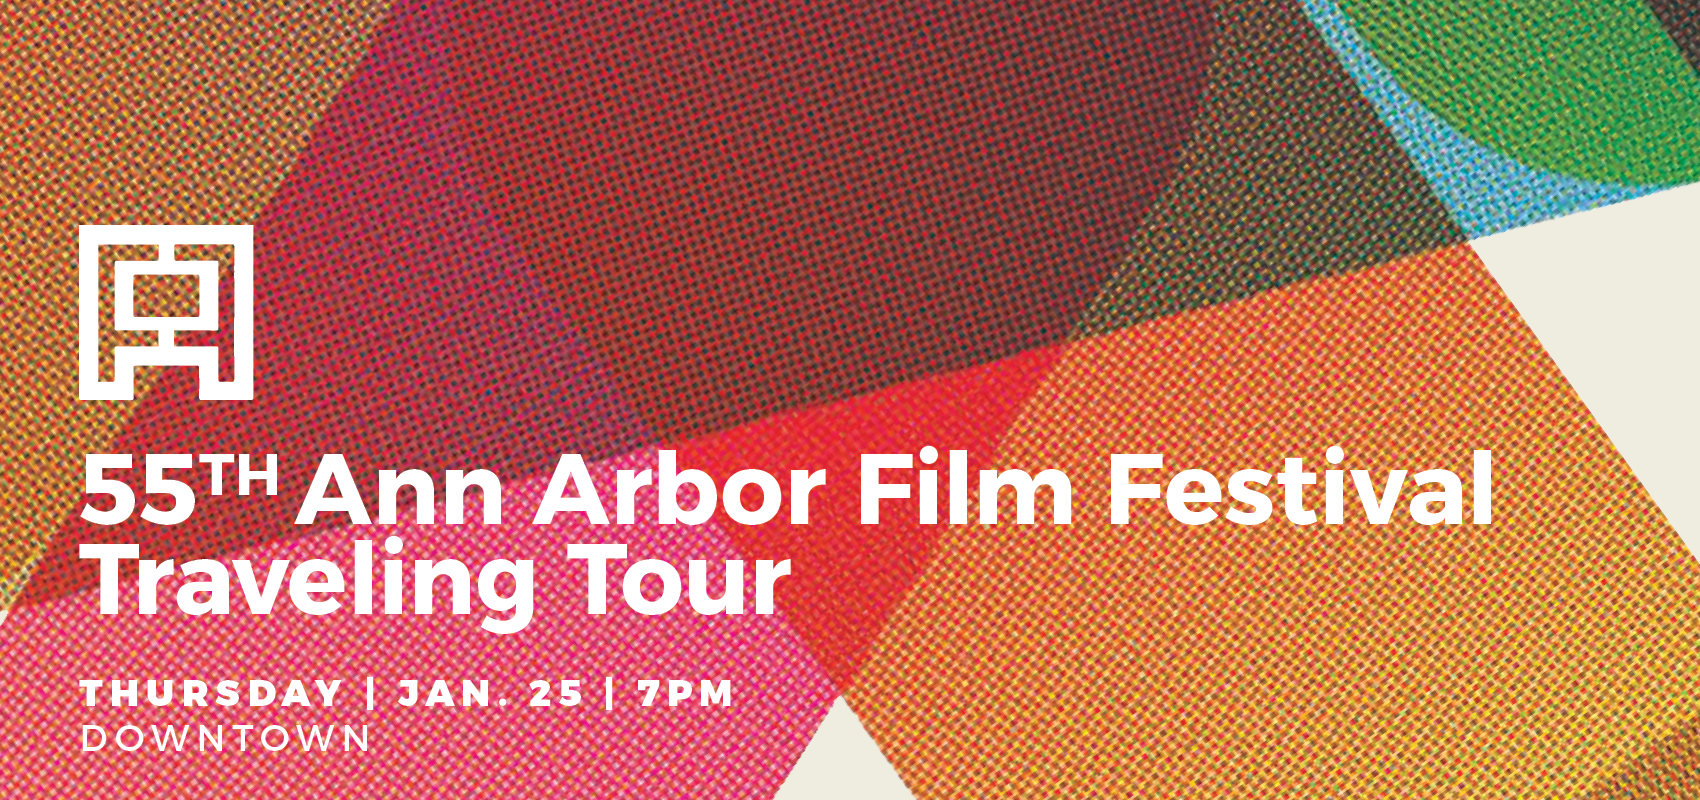 Ann Arbor Film Festival 55th Tour. Six experimental short films.